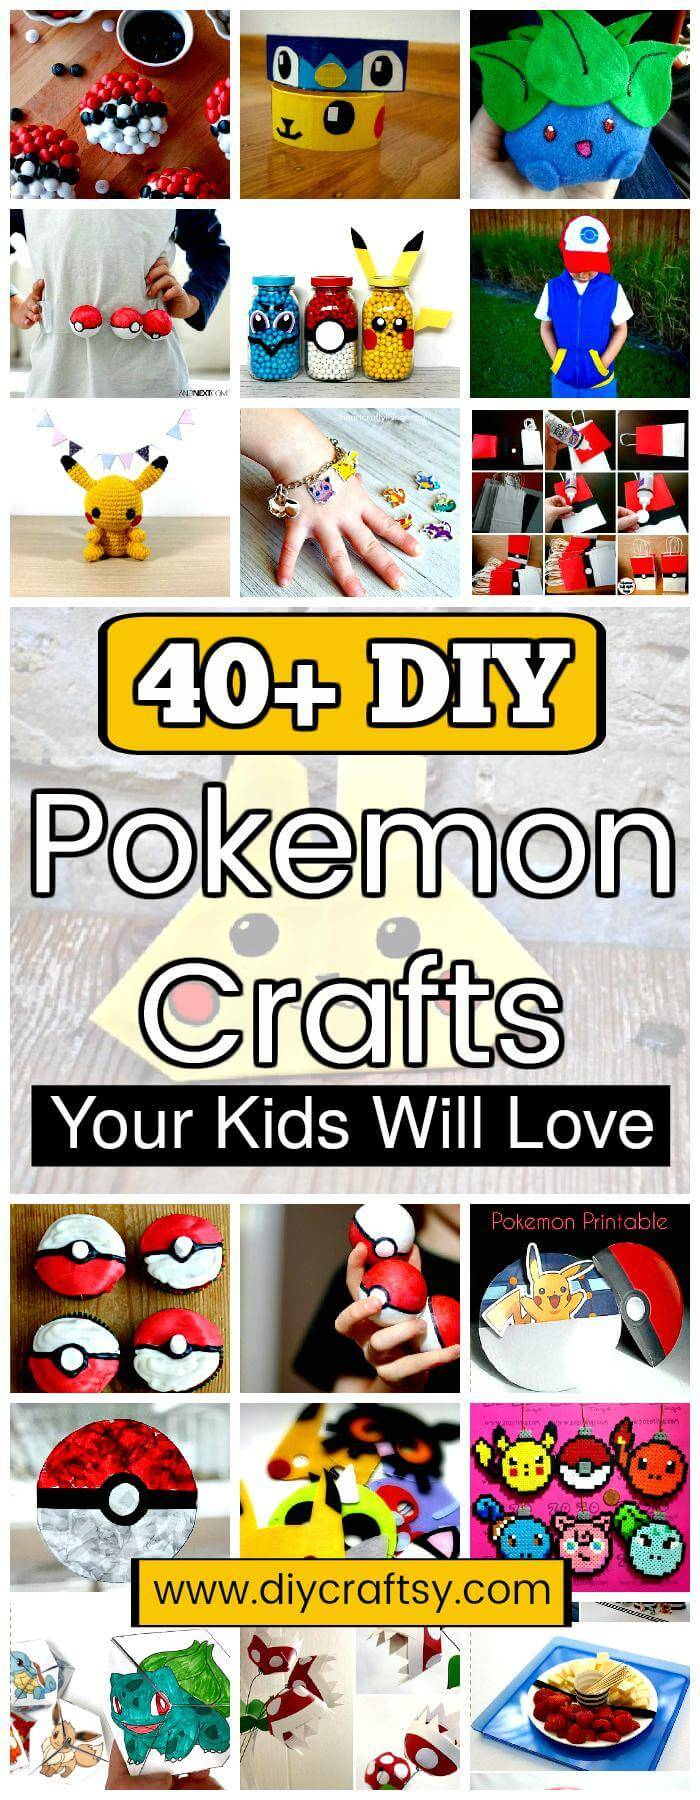 DIY Pokemon Crafts